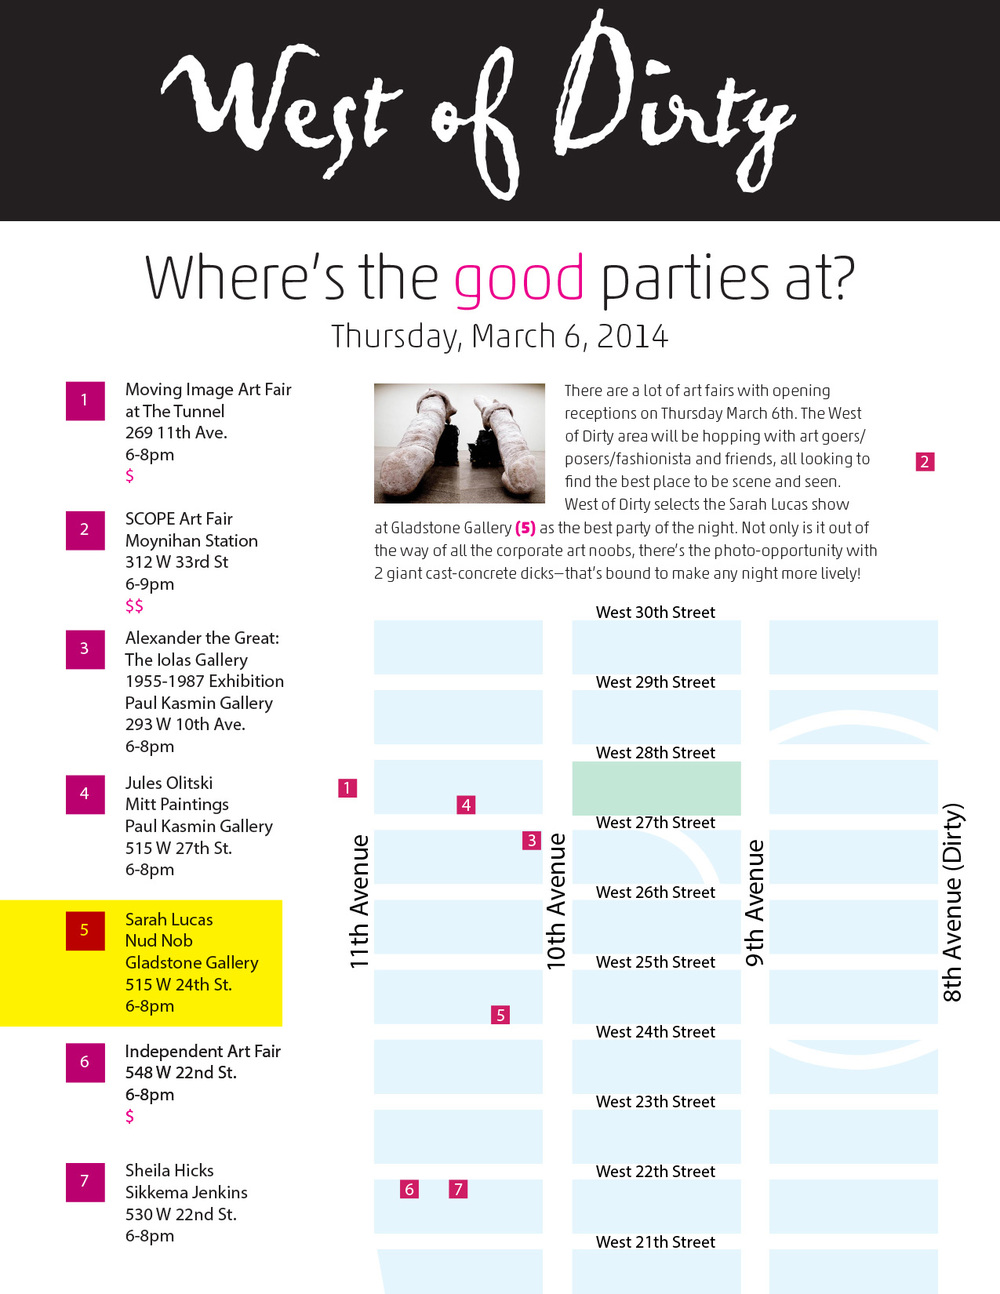 Tomorrow nights gonna be a big night in the art world. Here's your map courtesy of WOD!